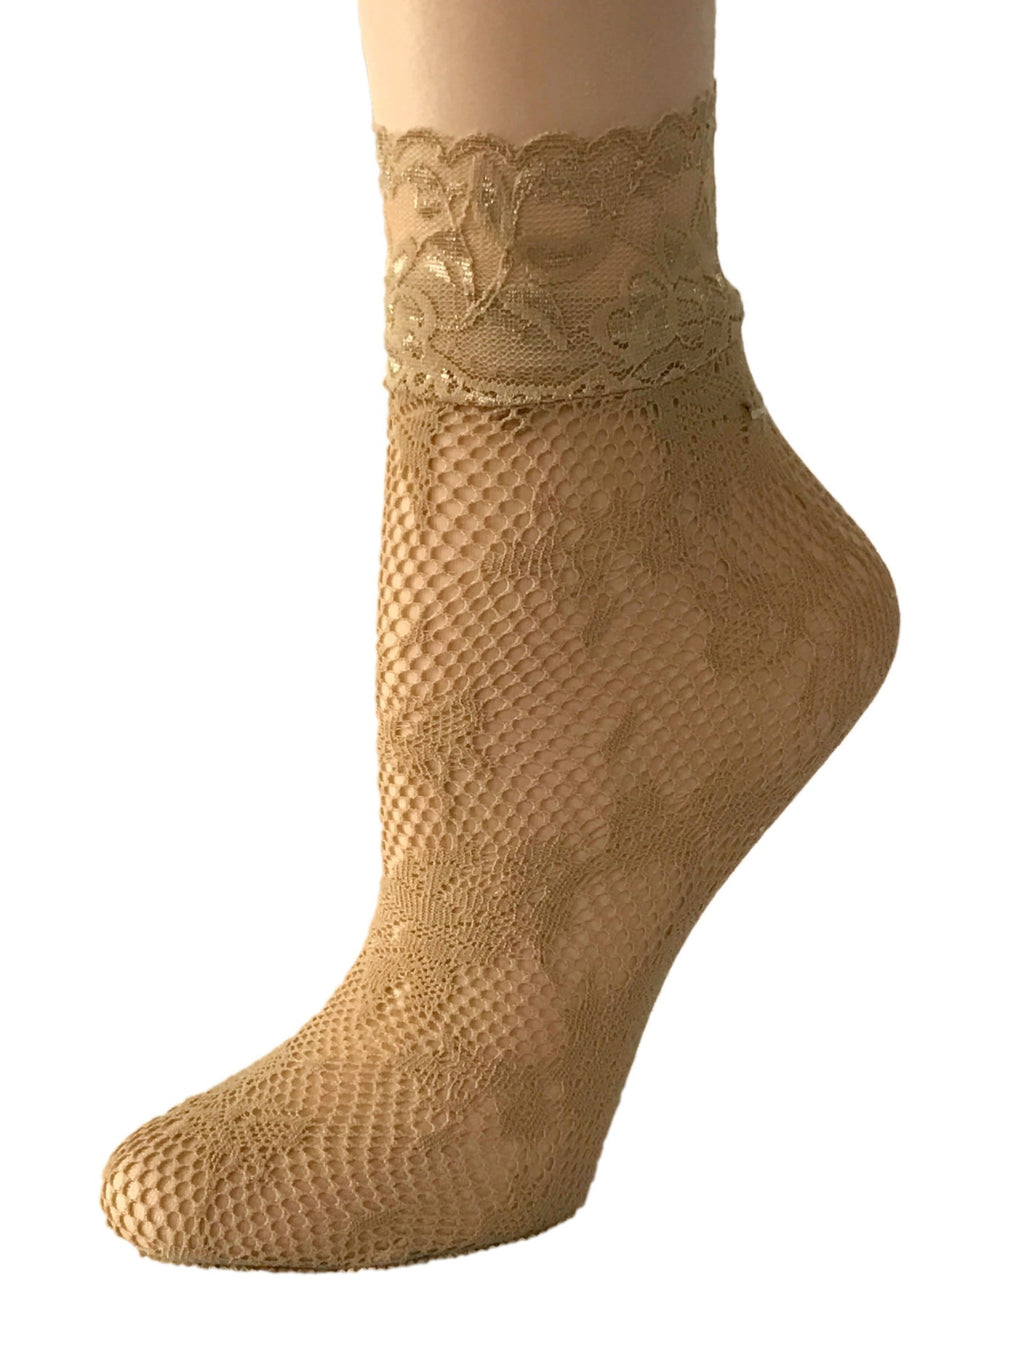 Nifty Beige Mesh Socks - Global Trendz Fashion®